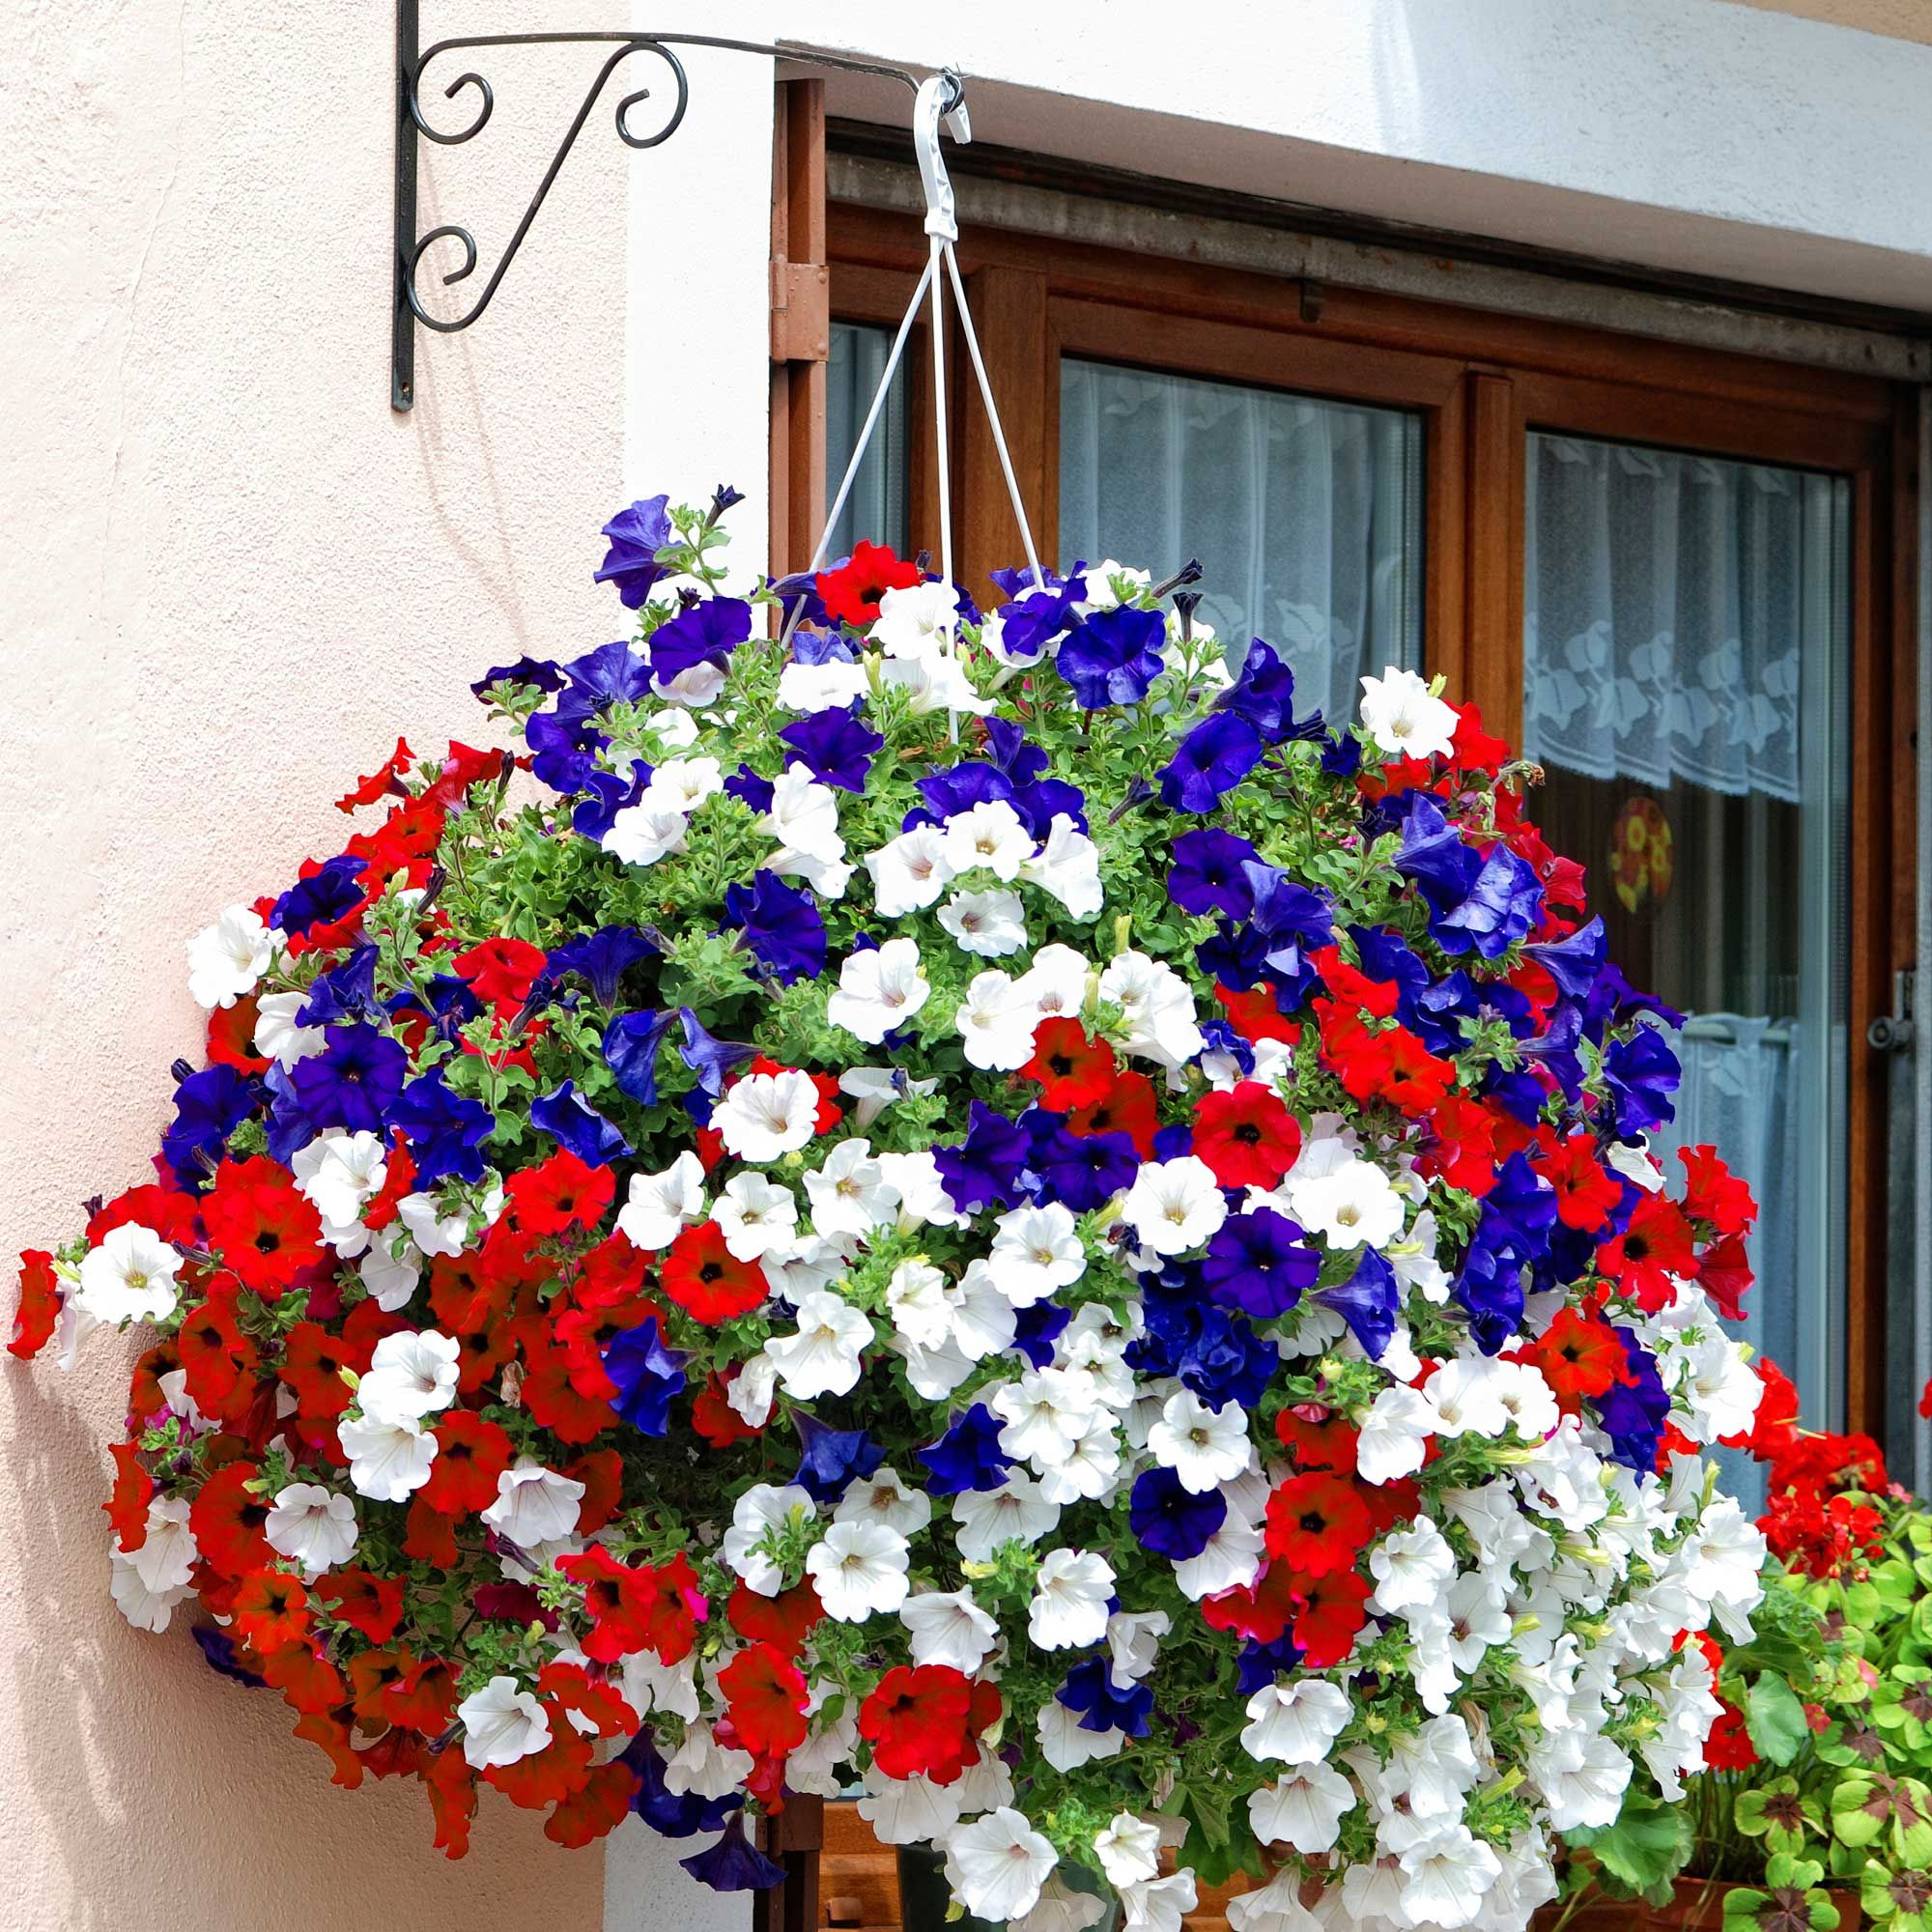 Hanging flower baskets mix hanging baskets in red white hanging flower baskets mix hanging baskets in red white blue izmirmasajfo Gallery